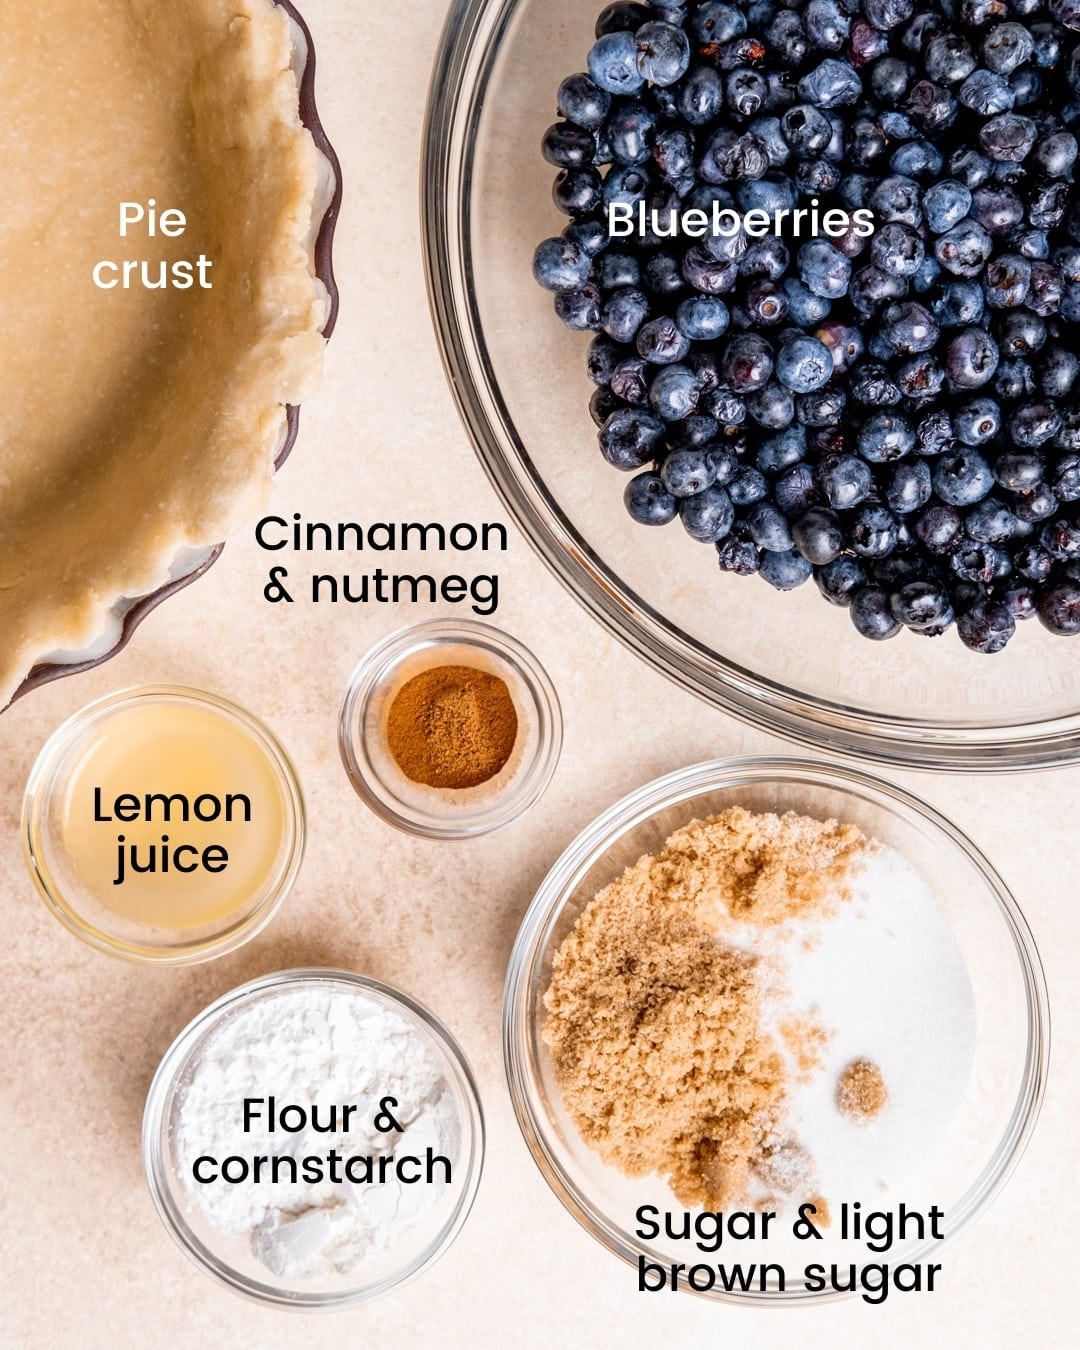 spiced blueberry pie ingredients laid out and labeled